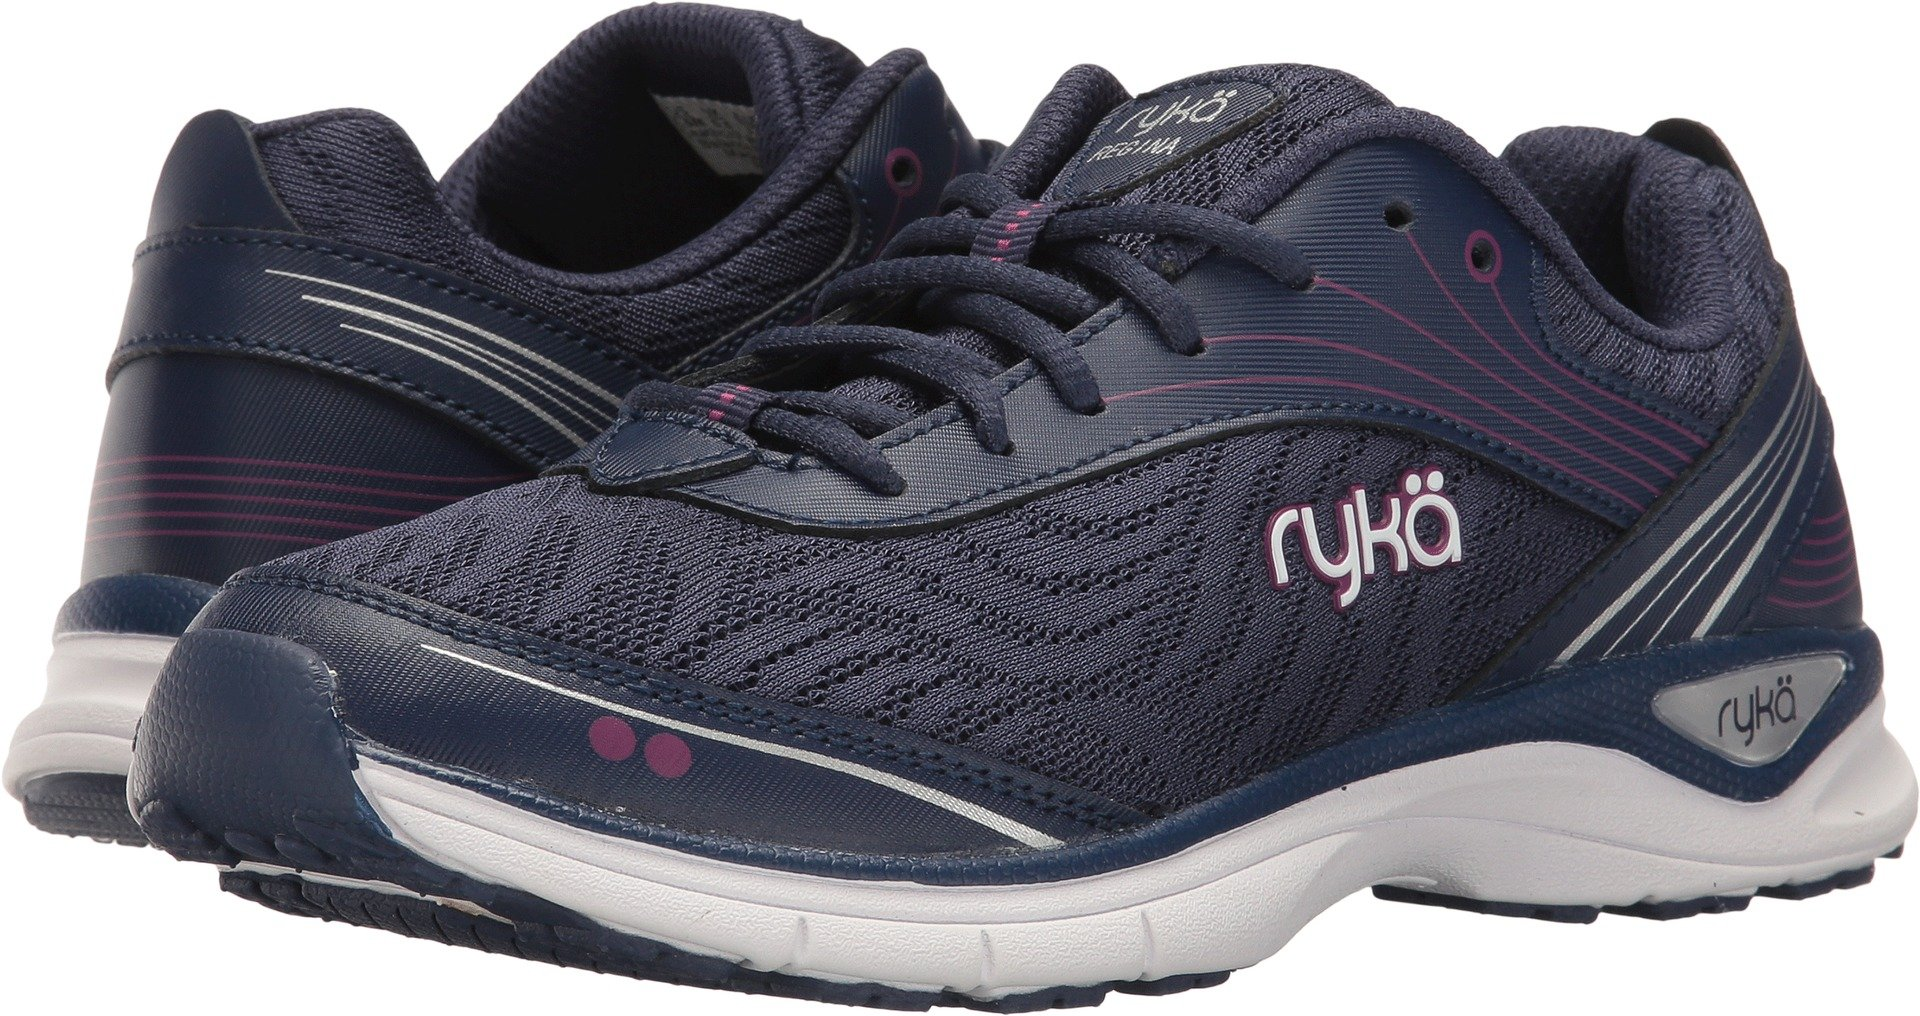 Ryka Women's Regina Blue/Purple/Silver 10 D US